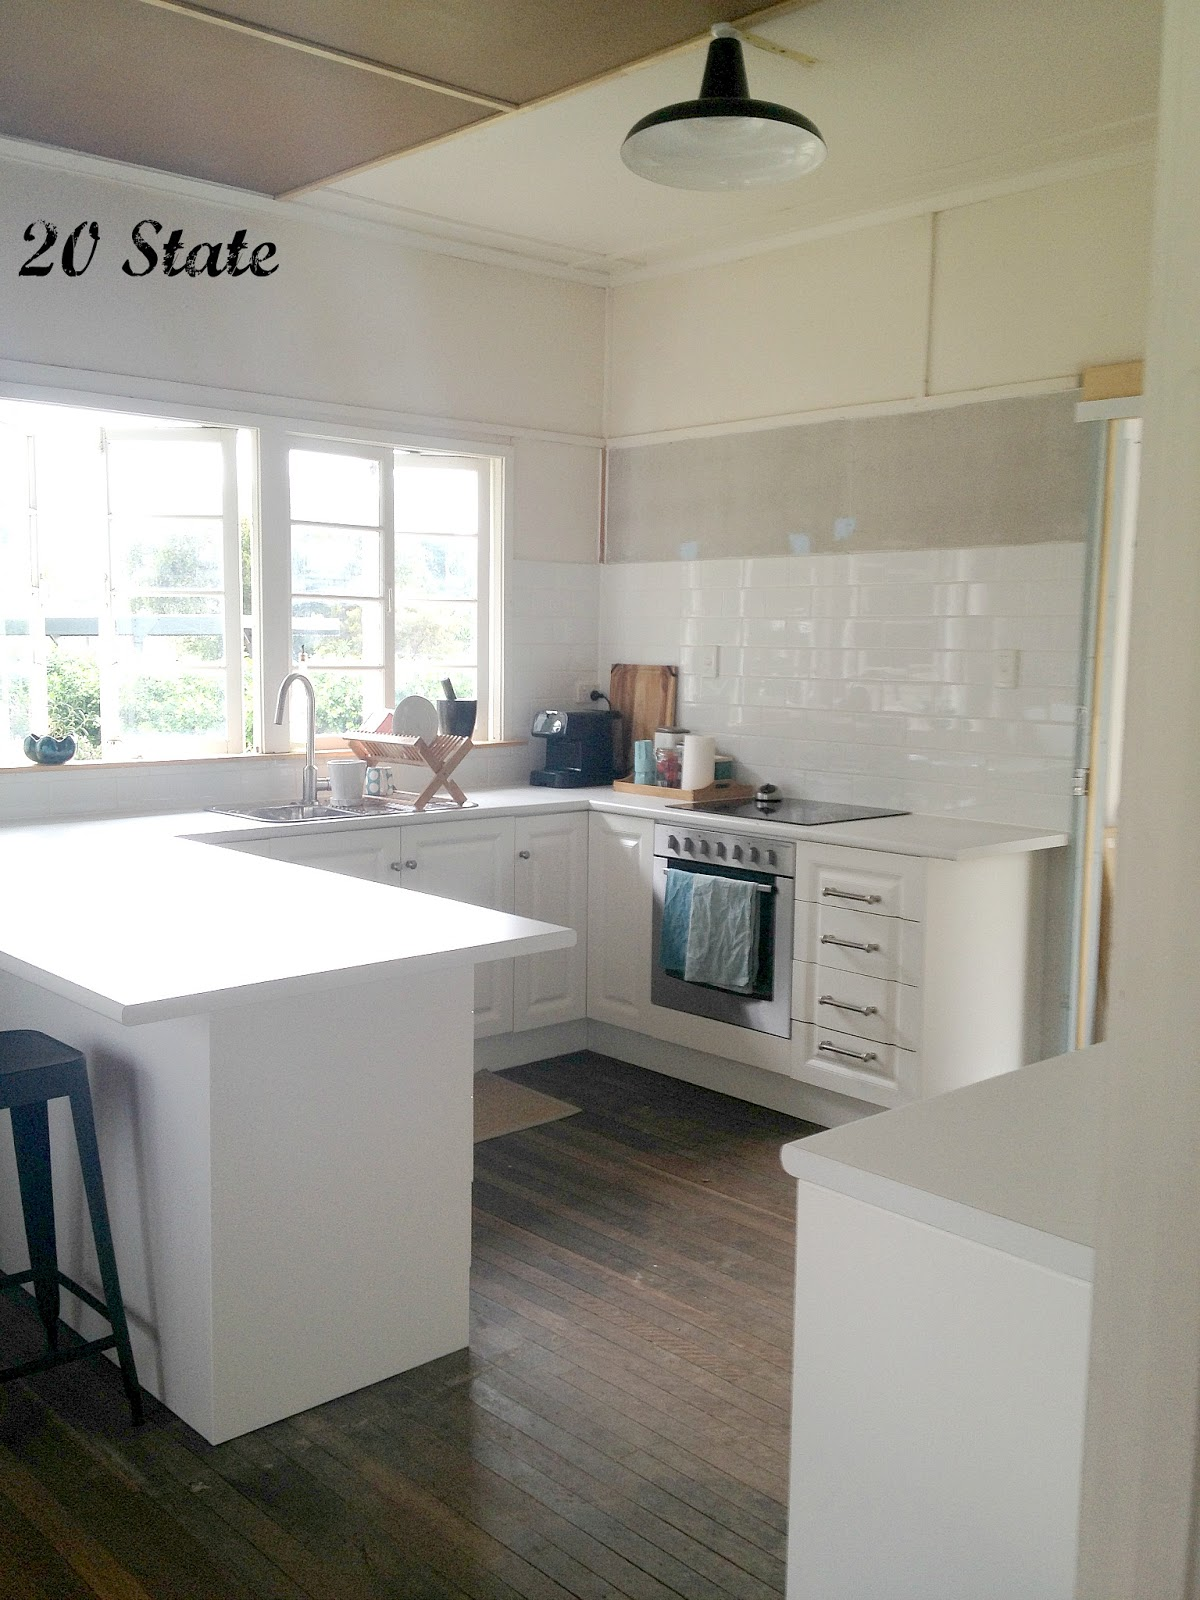 Charmant ... 20 State: White Flatpack U Shaped Kitchen With Island   Just Add